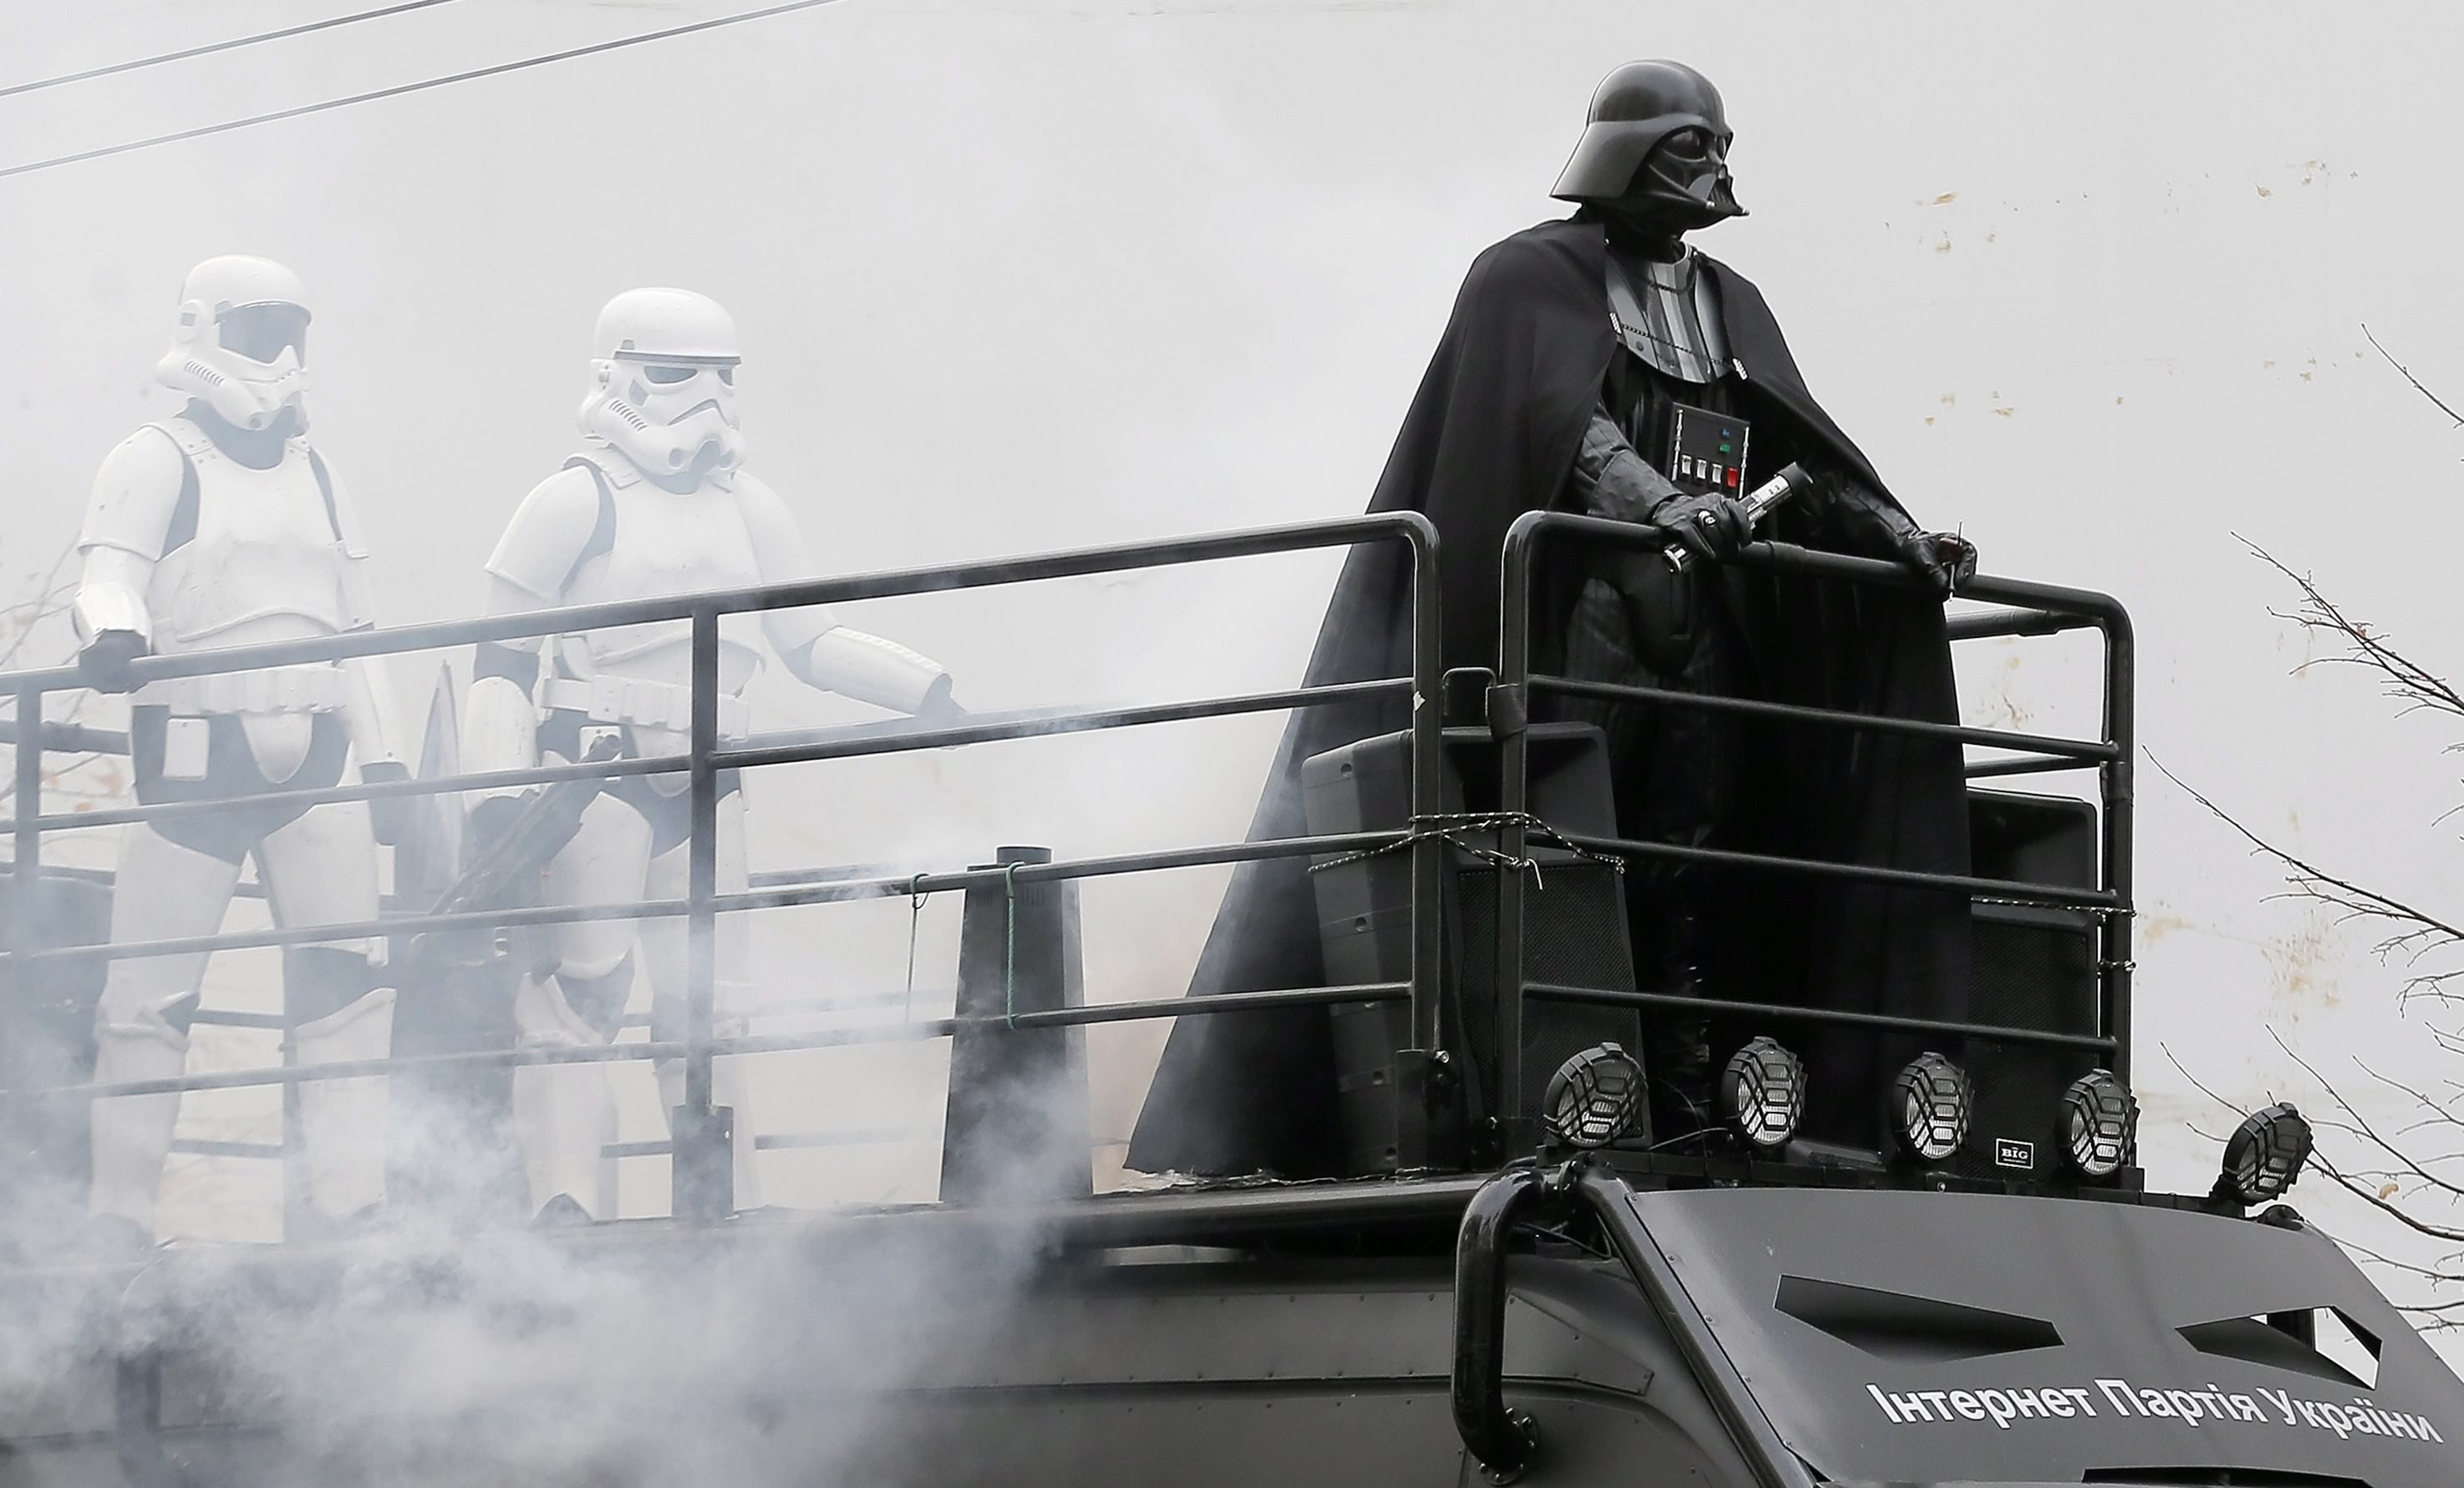 An impersonator of Star Wars character 'Darth Vader' stands with some storm troopers on the roof of a campaigning van during an election campaign event for the Ukrainian Internet Party, in downtown Kiev, Ukraine on Oct. 21, 2014.